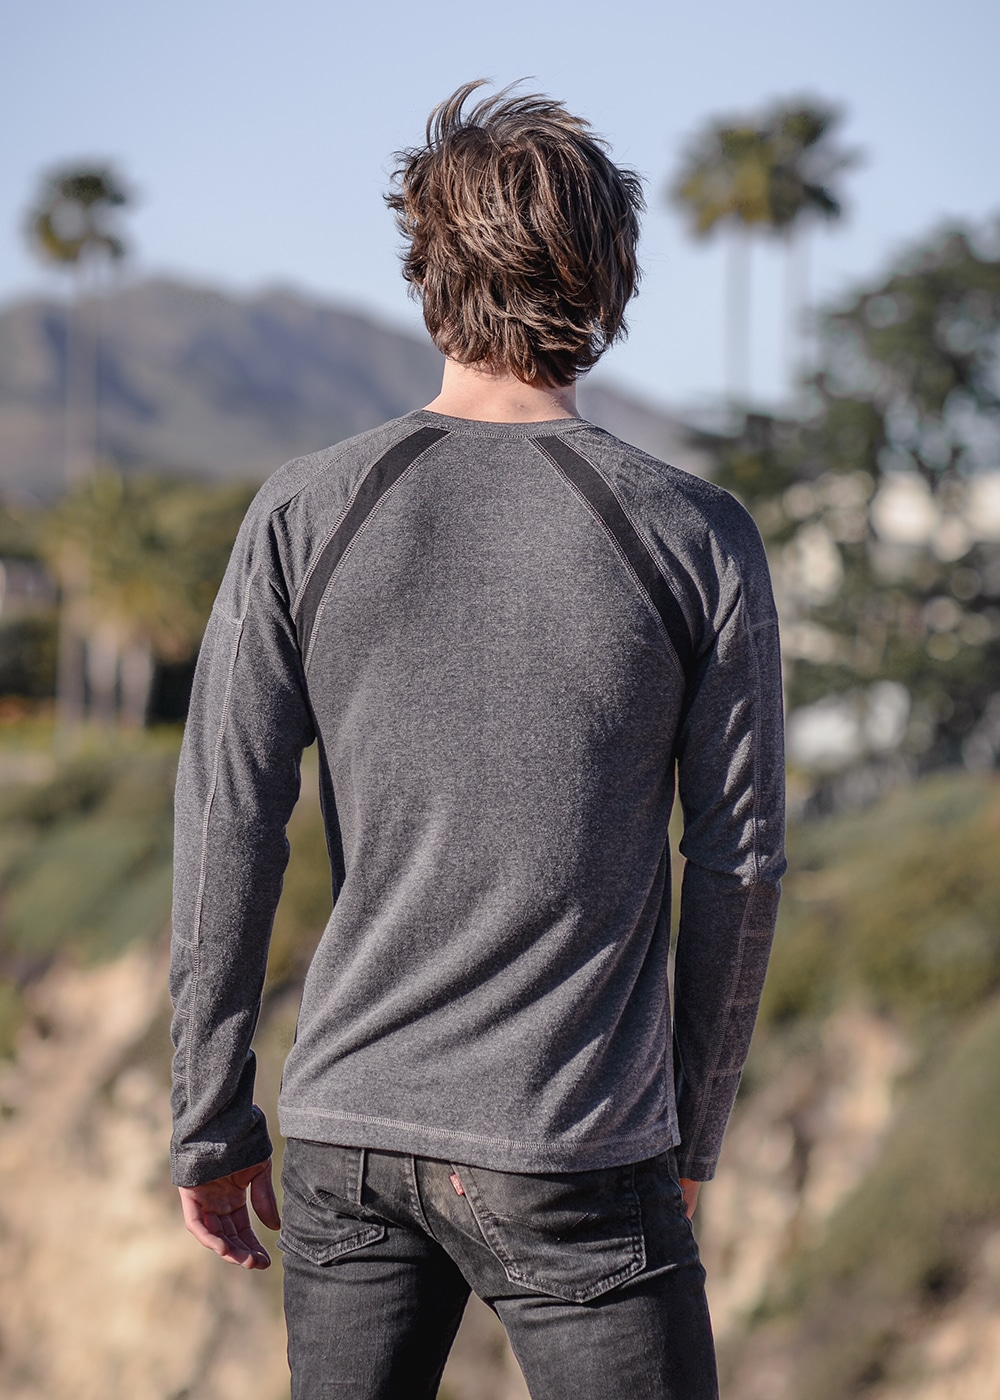 Men's Bamboo and Organic Cotton Warrior Tee in Grey by Nomads Hemp Wear Back